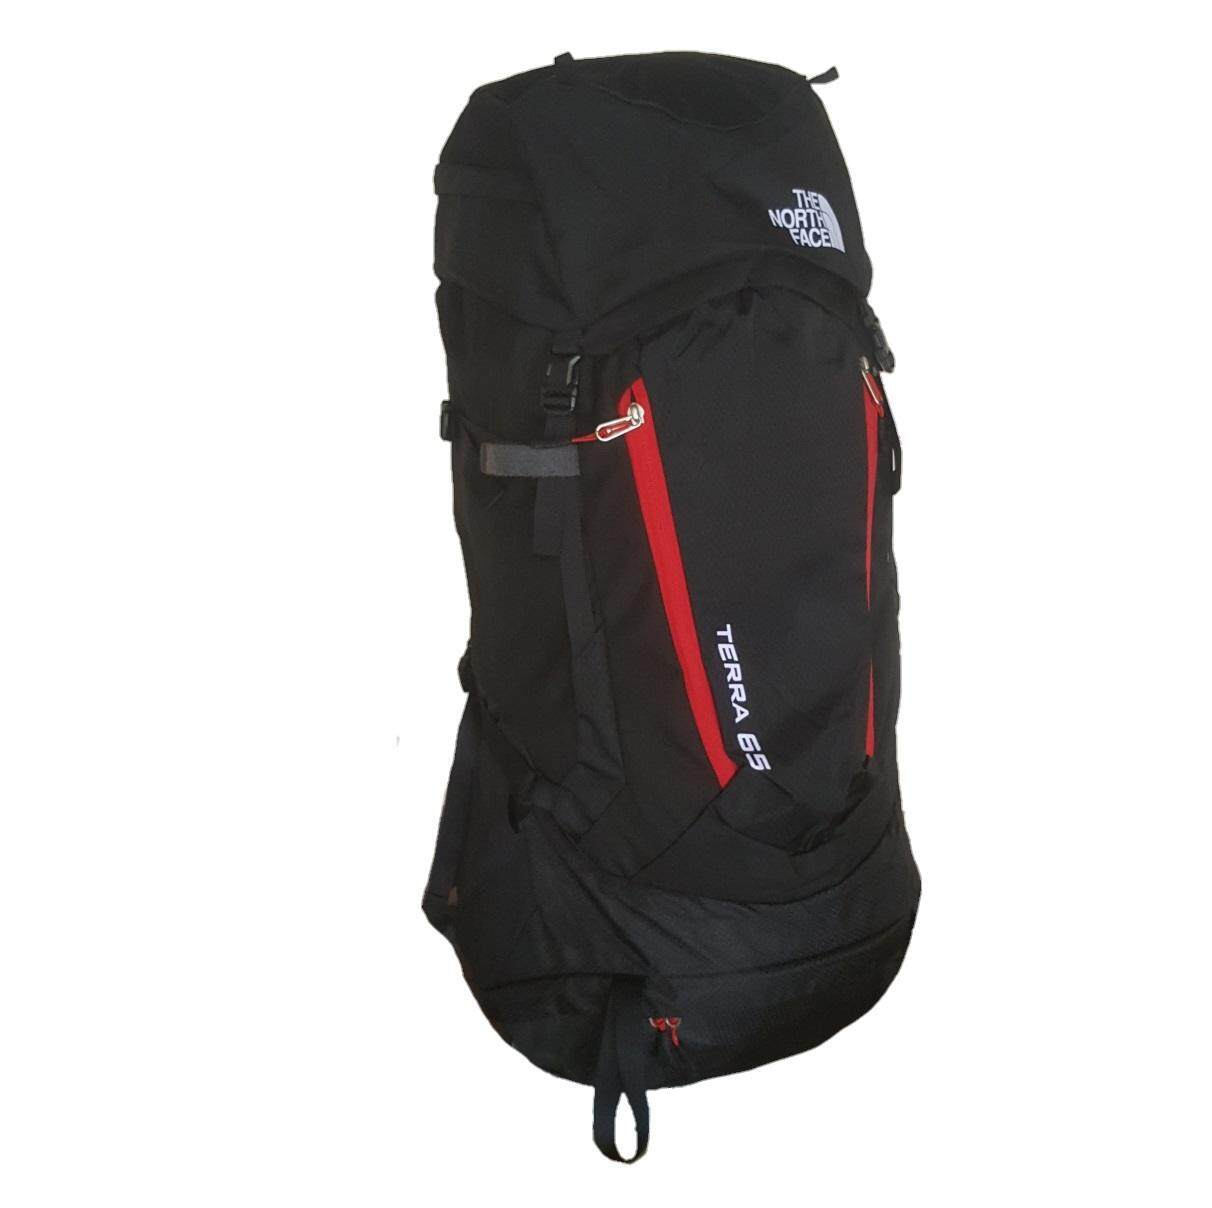 3fc4c4100f The North Face Backpack Price Malaysia- Fenix Toulouse Handball